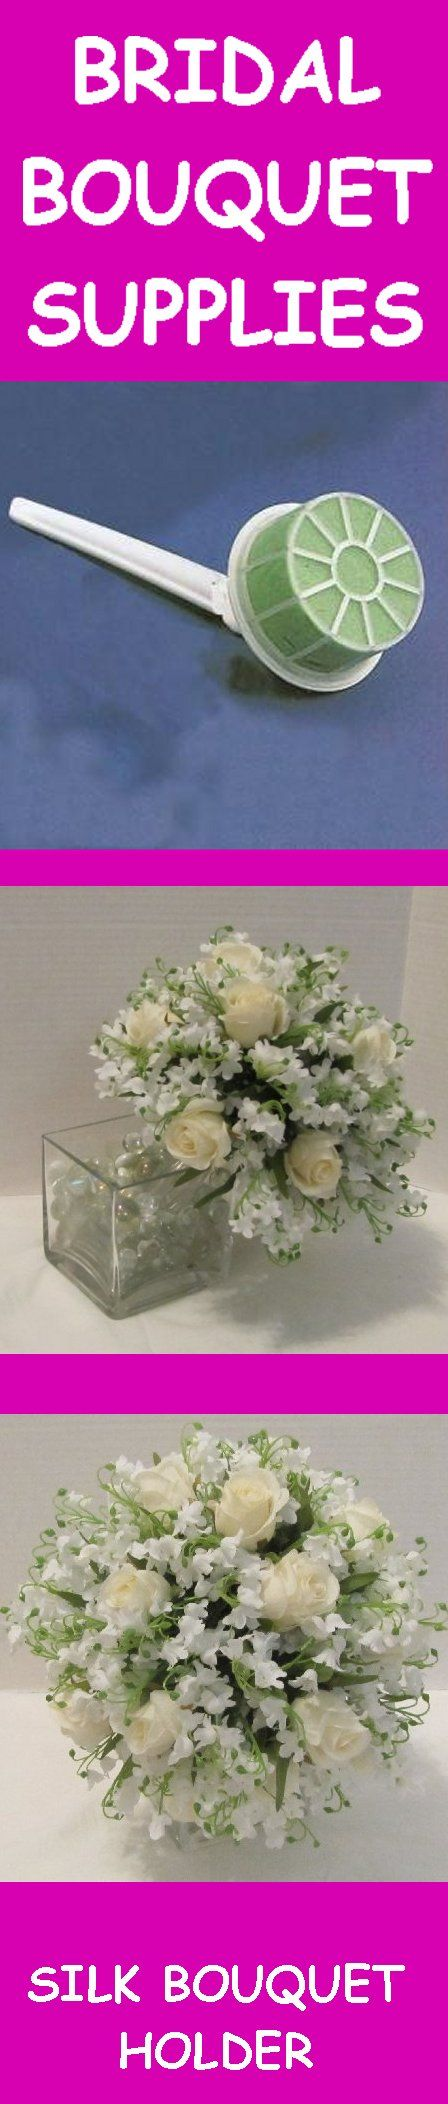 Bridal Bouquet Holders - Step by Step Free and Easy Wedding Flower Designing  Learn how to make bridal bouquets, wedding corsages, groom boutonnieres, church decorations and reception centerpieces!  Buy wholesale flowers and discount florist supplies.